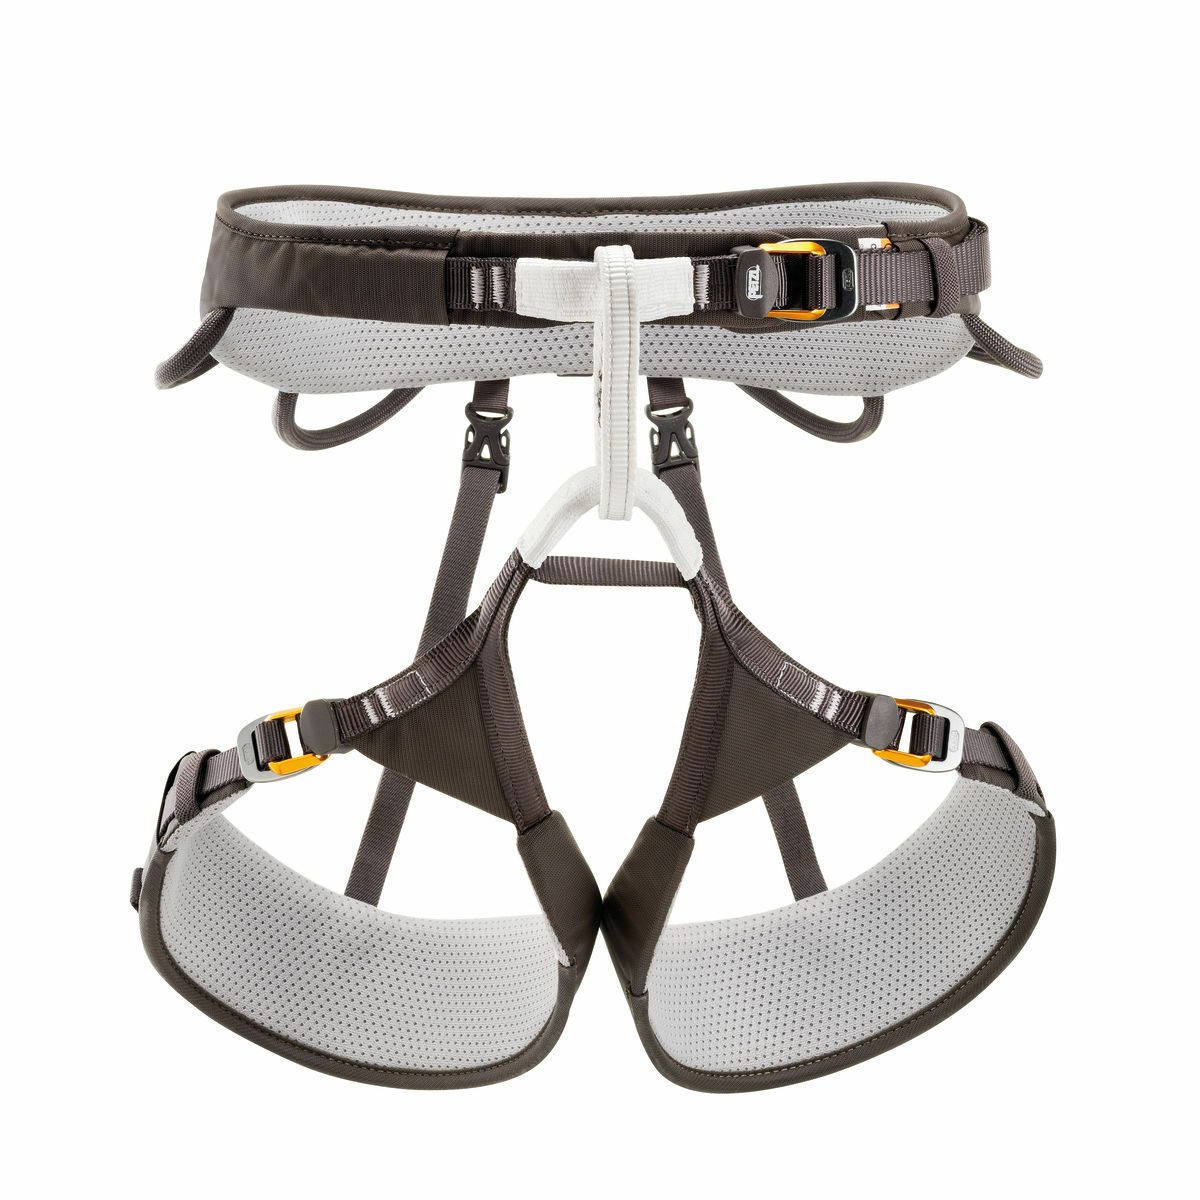 PETZL AQUILA   - High-end climbing and mountaineering harness